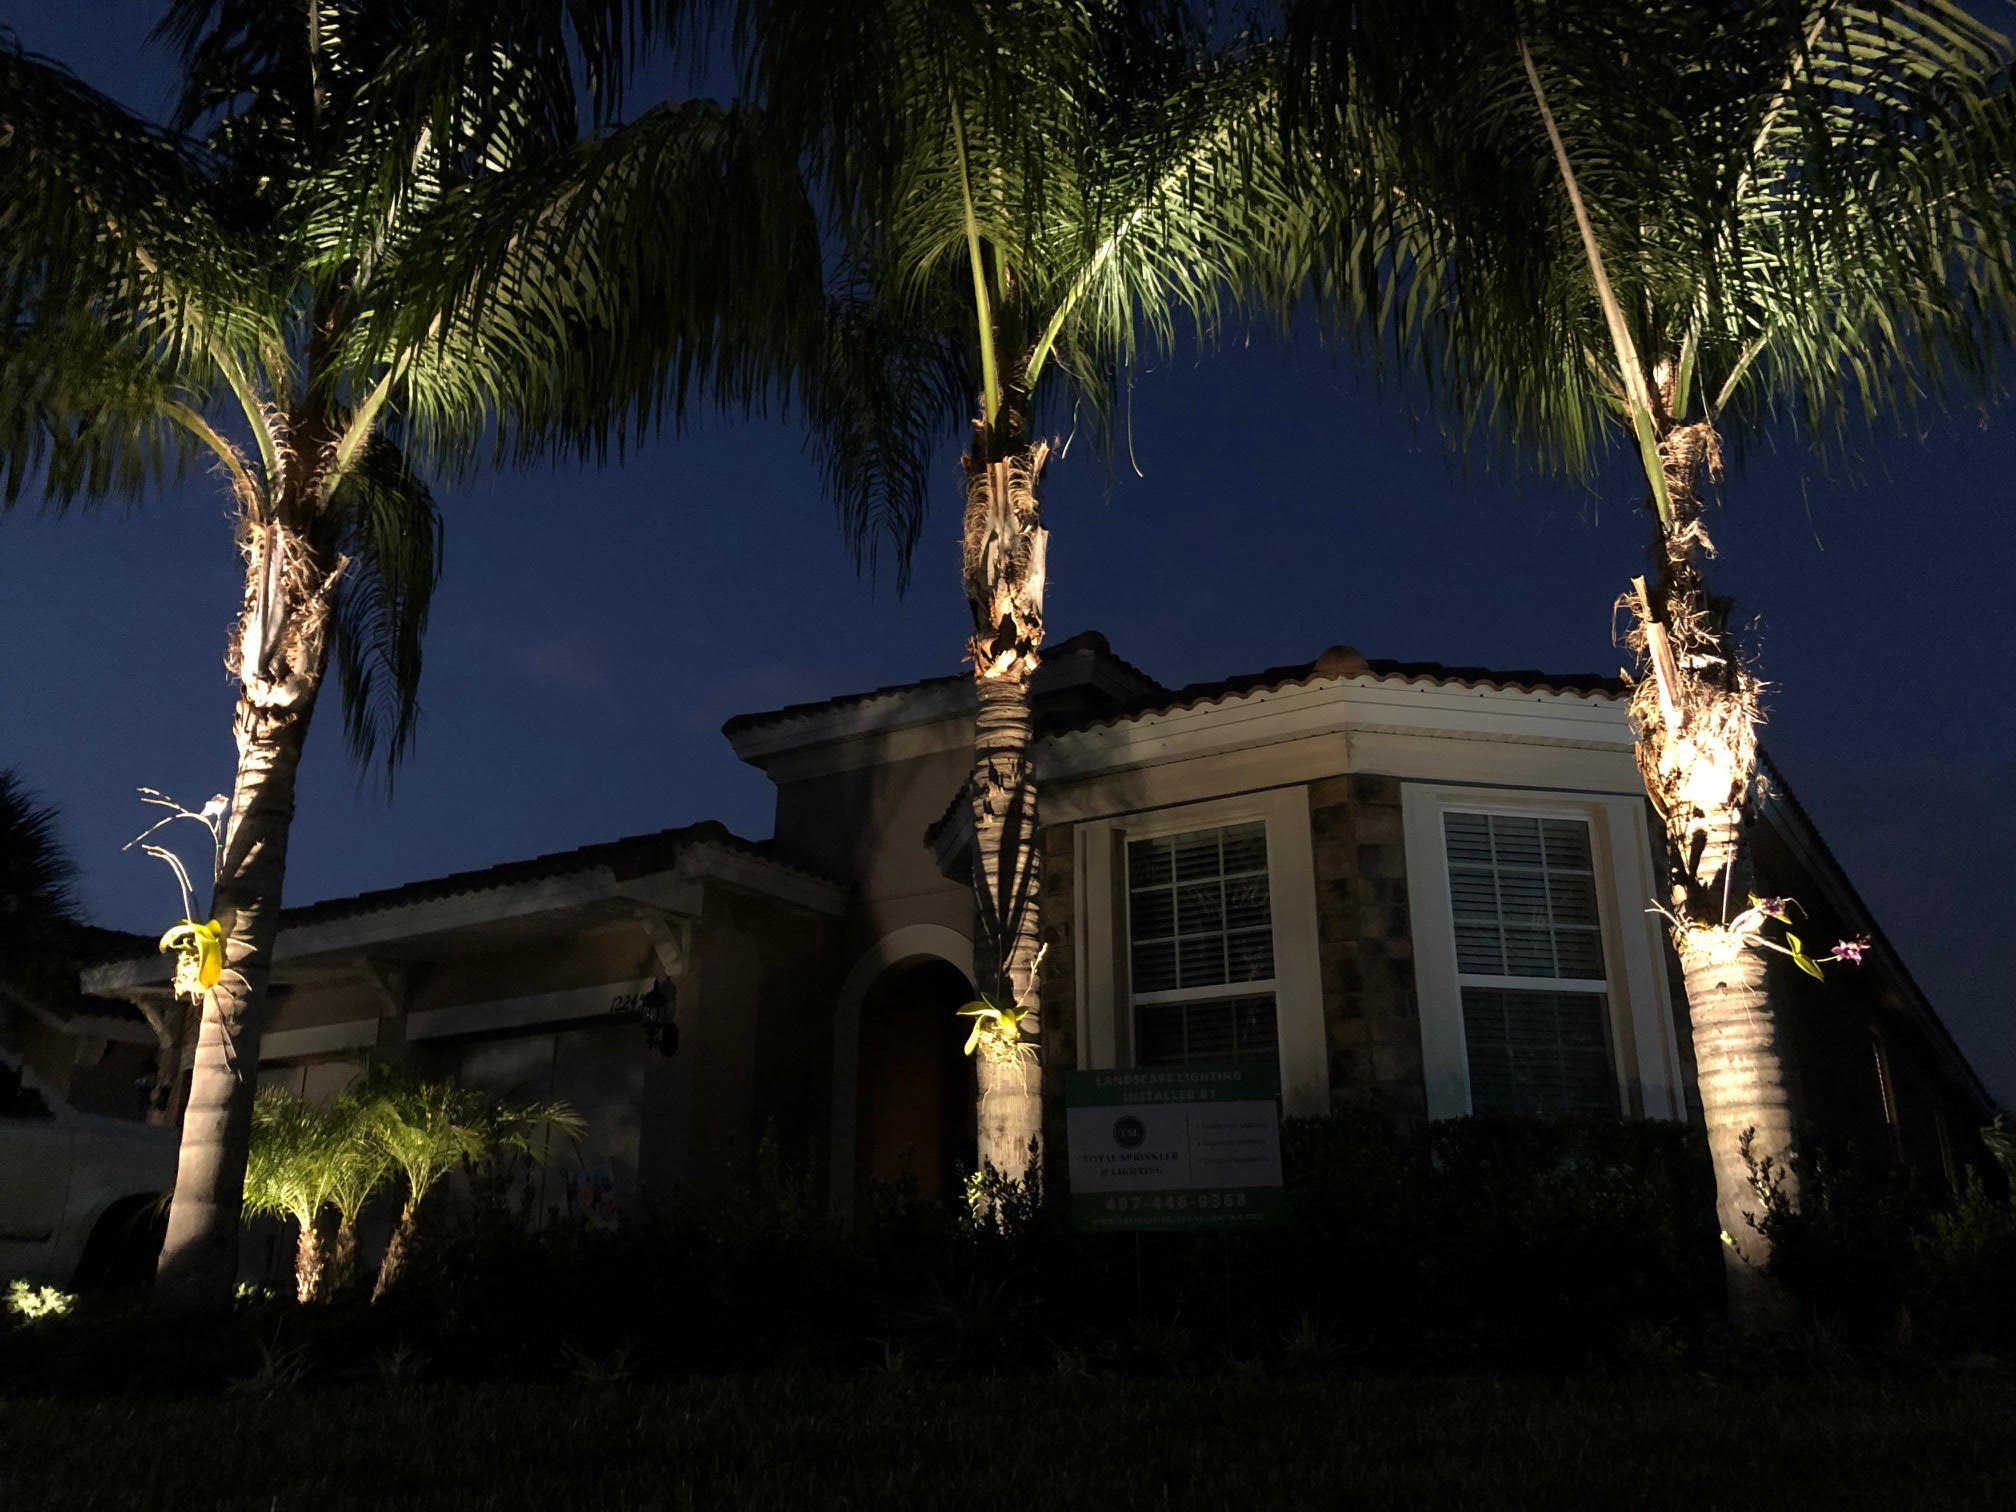 Up-lighting on Palm Trees in landscape